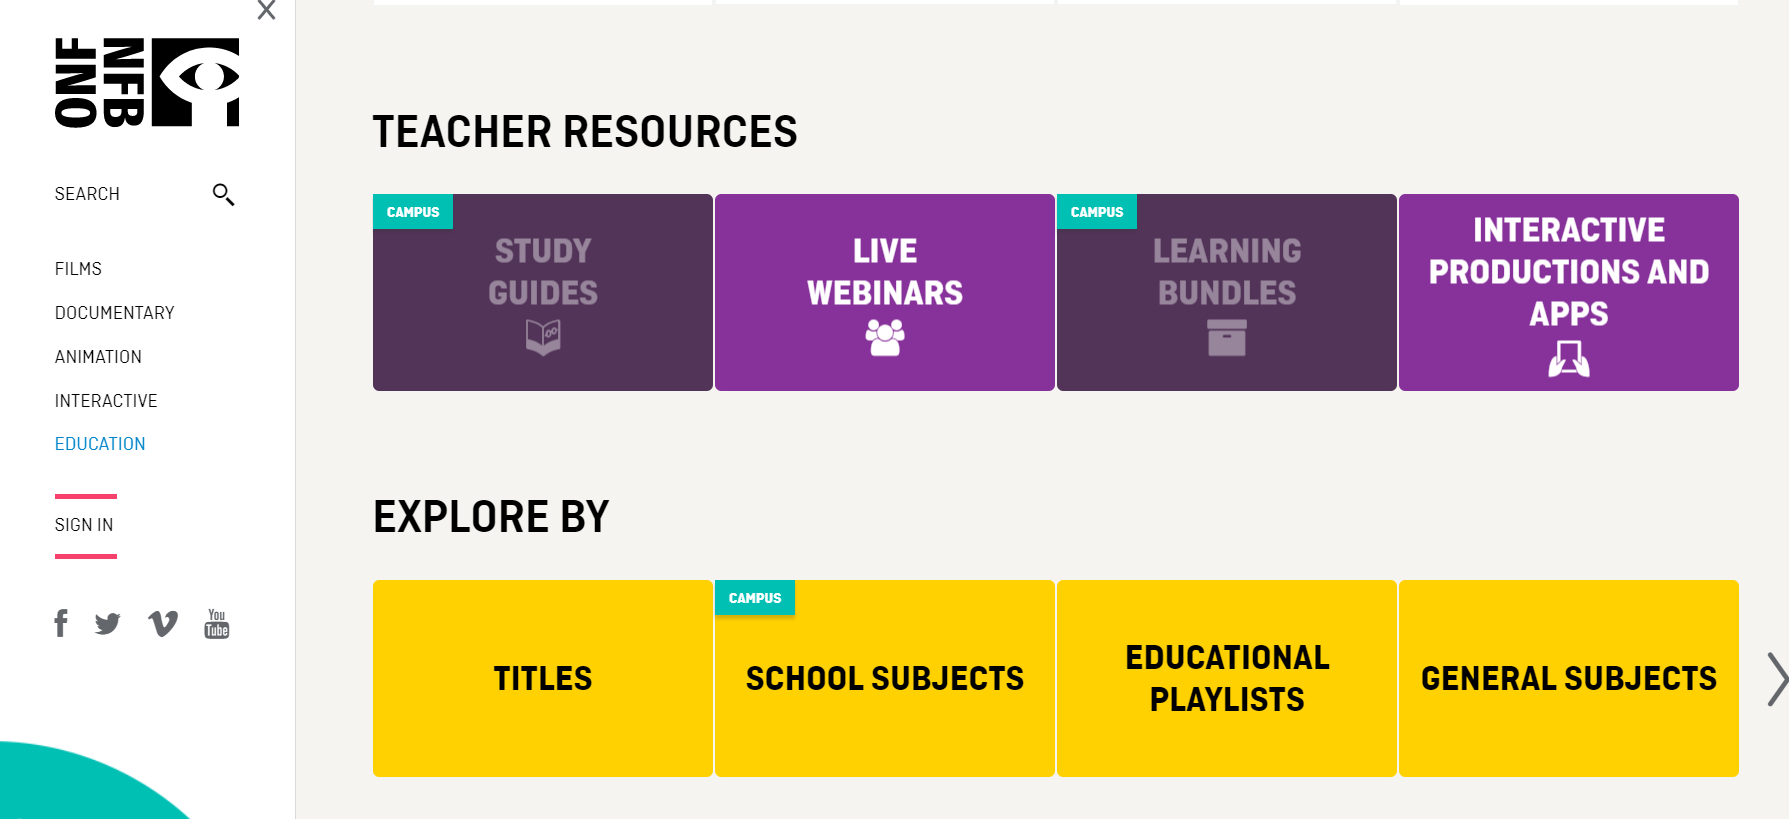 The National Film Board Education Resources